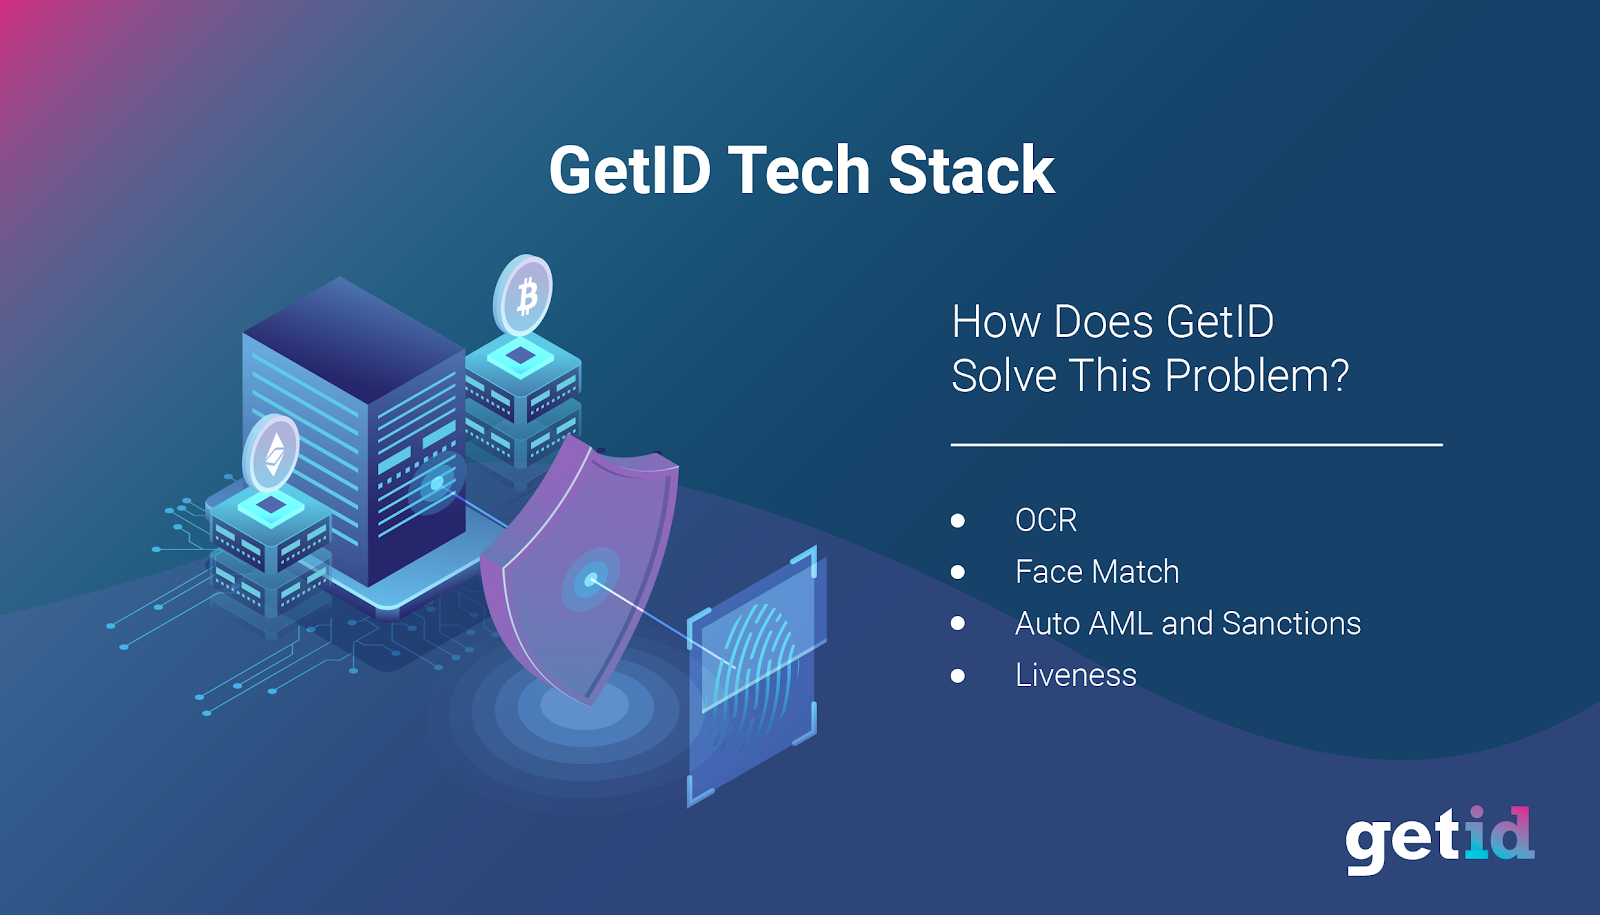 GetID Tech Stack